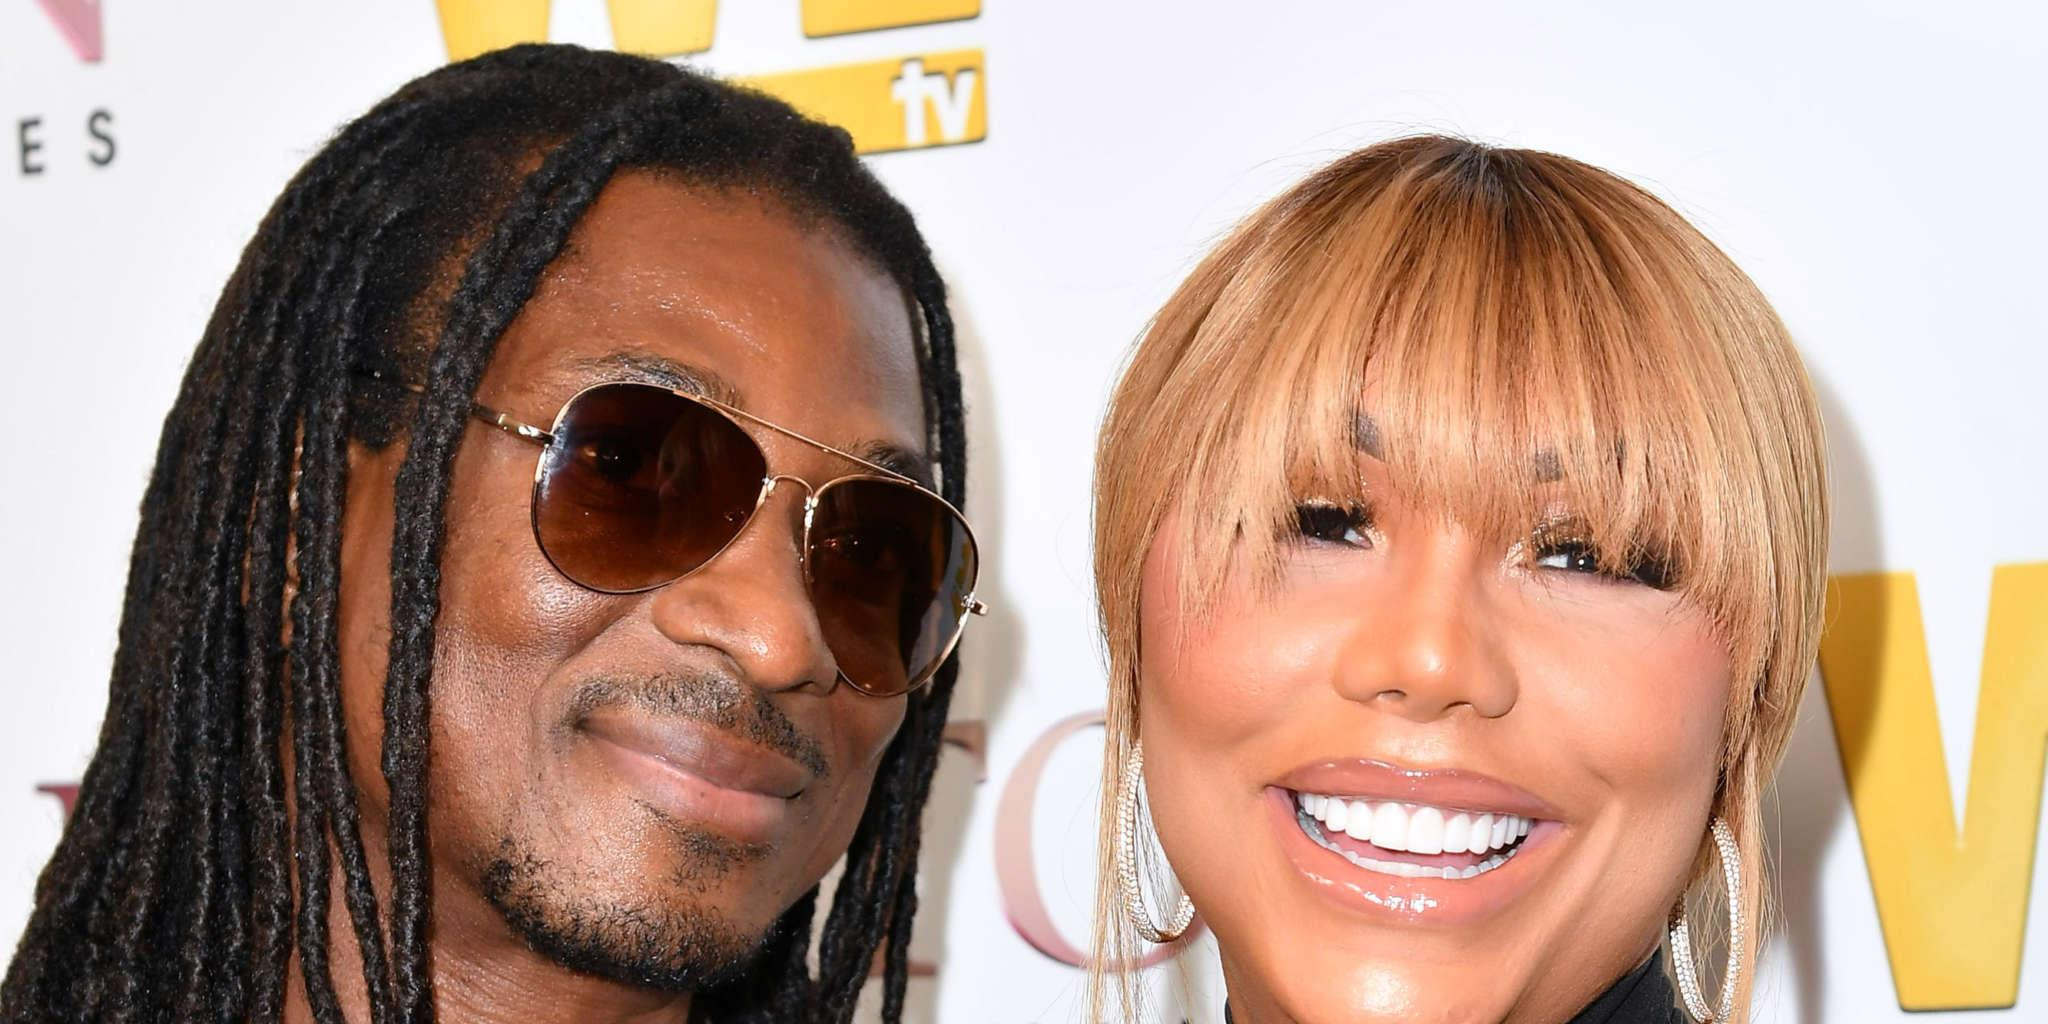 Tamar Braxton's BF, David Adefeso, Addresses A Crucial Subject For Students